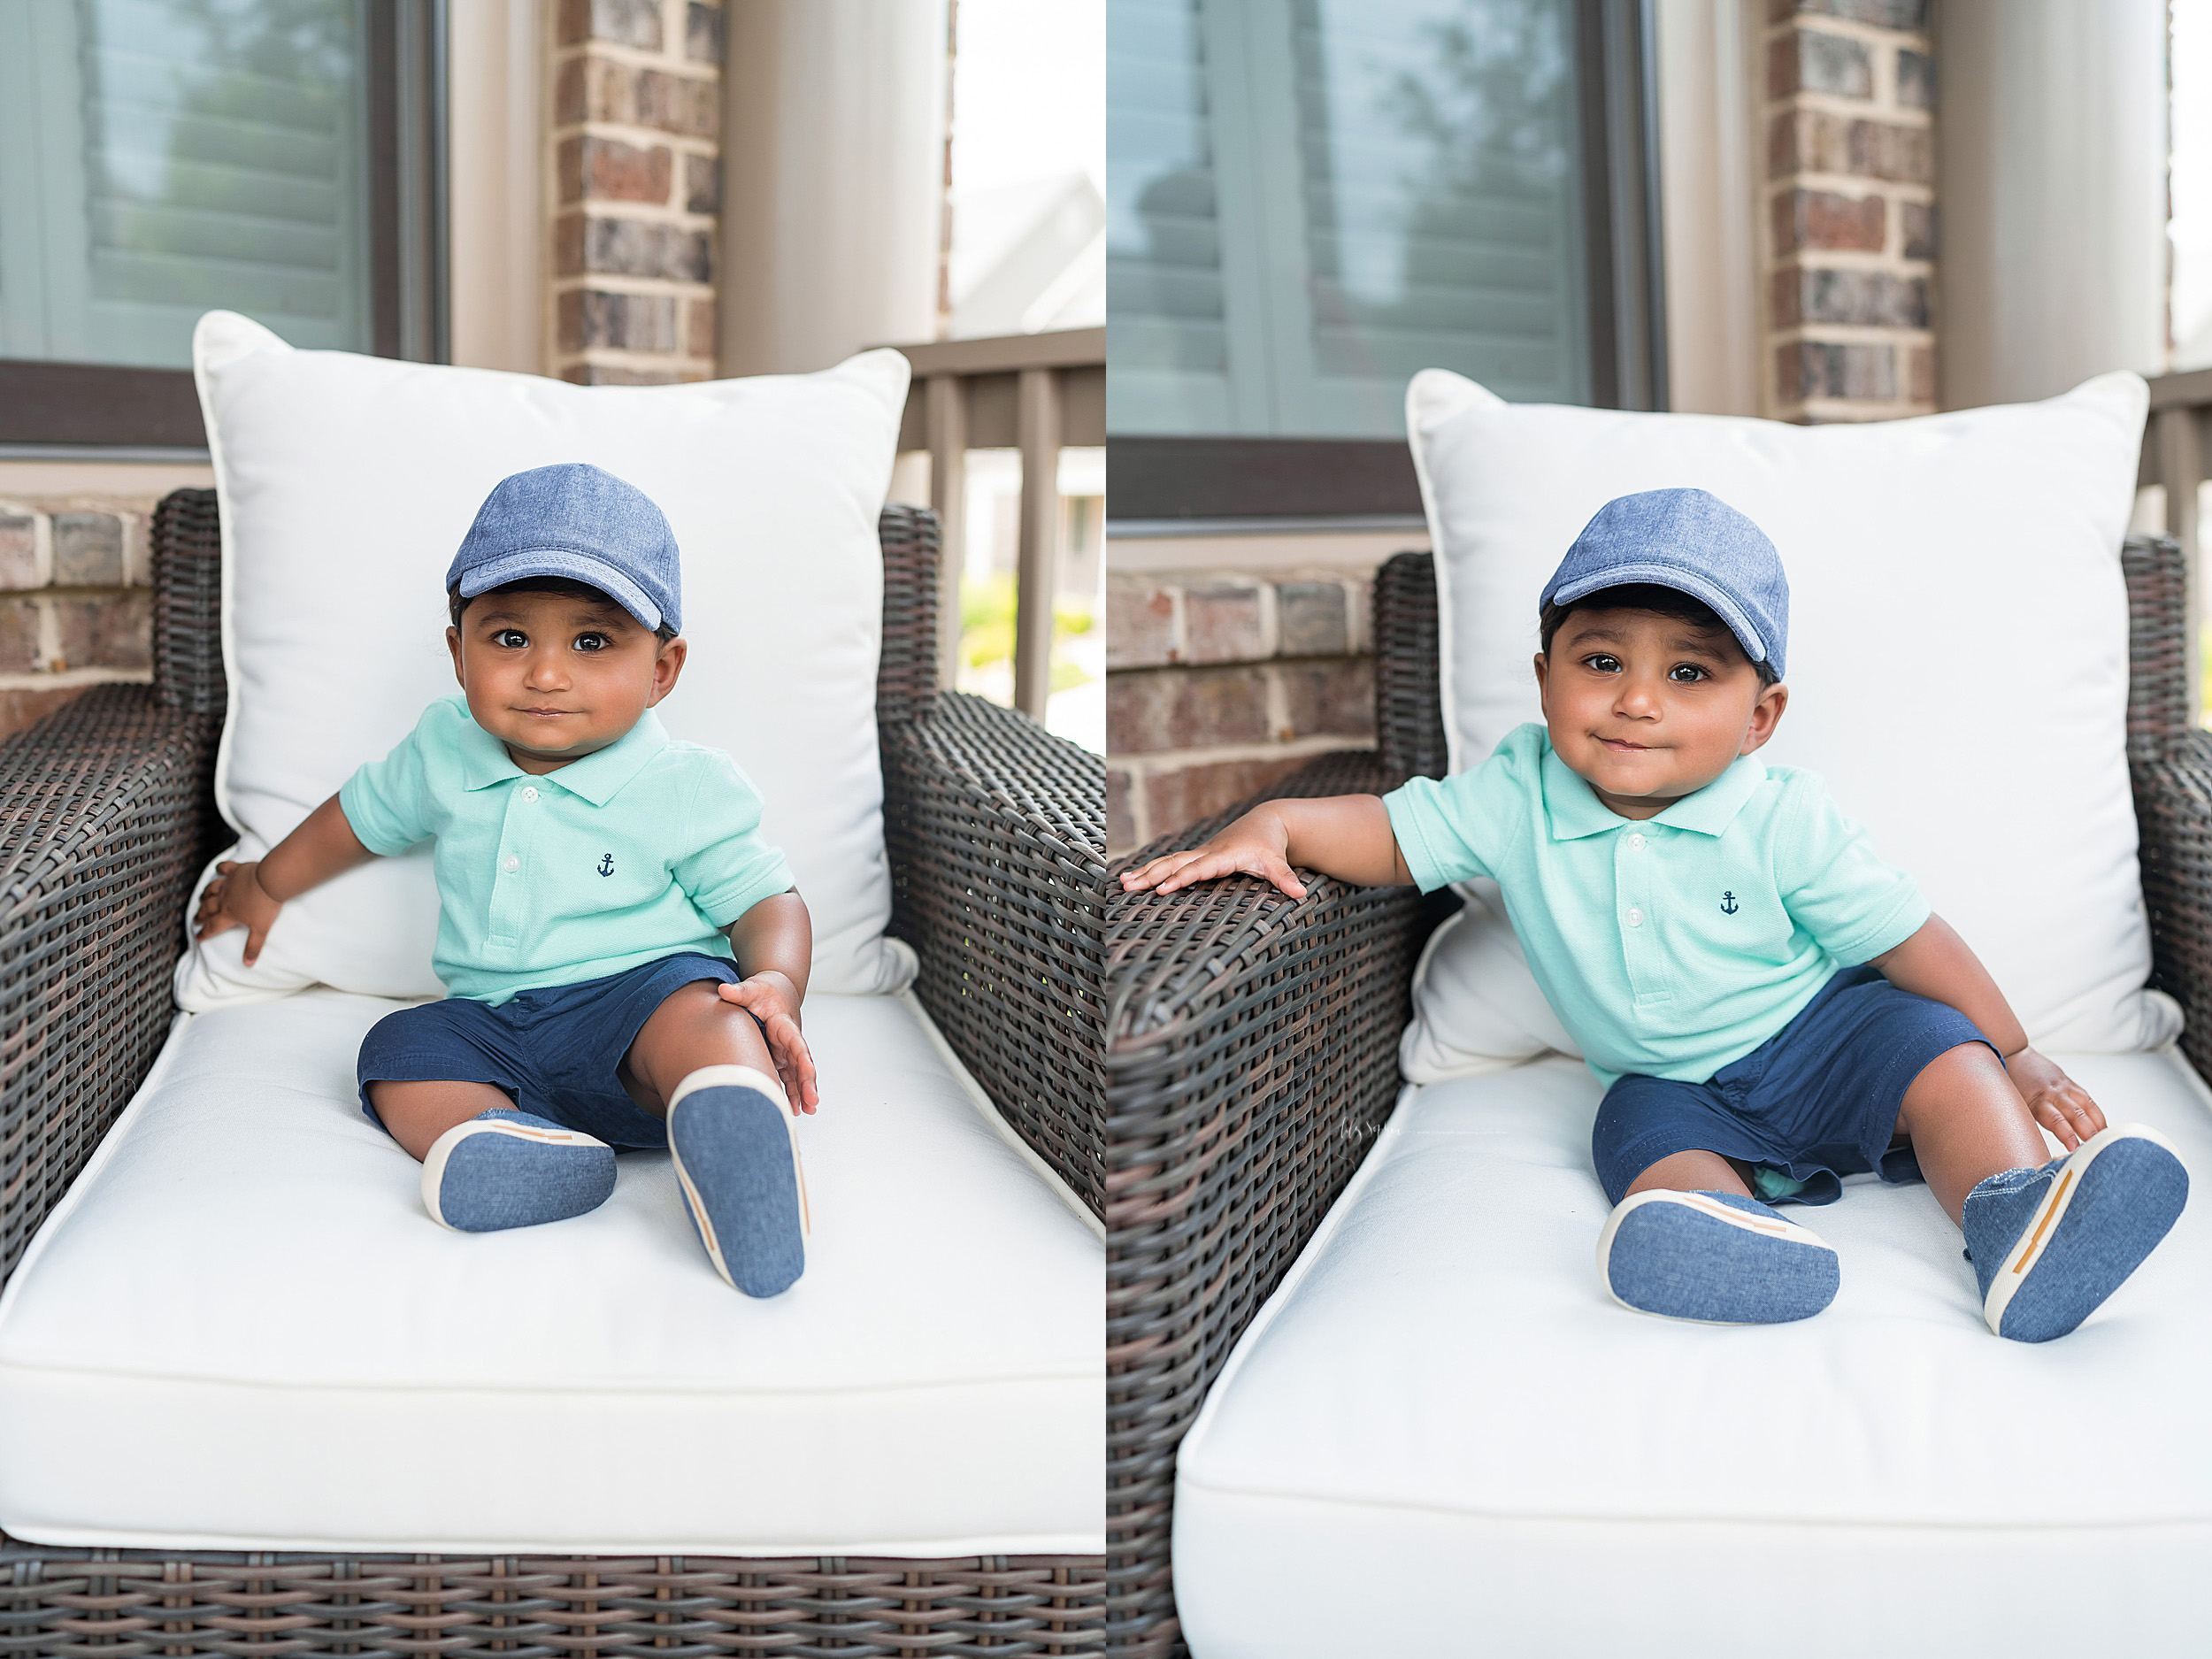 atlanta-brookhaven-east-cobb-marietta-candler-park-sandy-springs-buckhead-virginia-highlands-west-end-decatur-lily-sophia-photography-in-home-lifestyle-session-eight-month-milestone-indian-family_1673.jpg